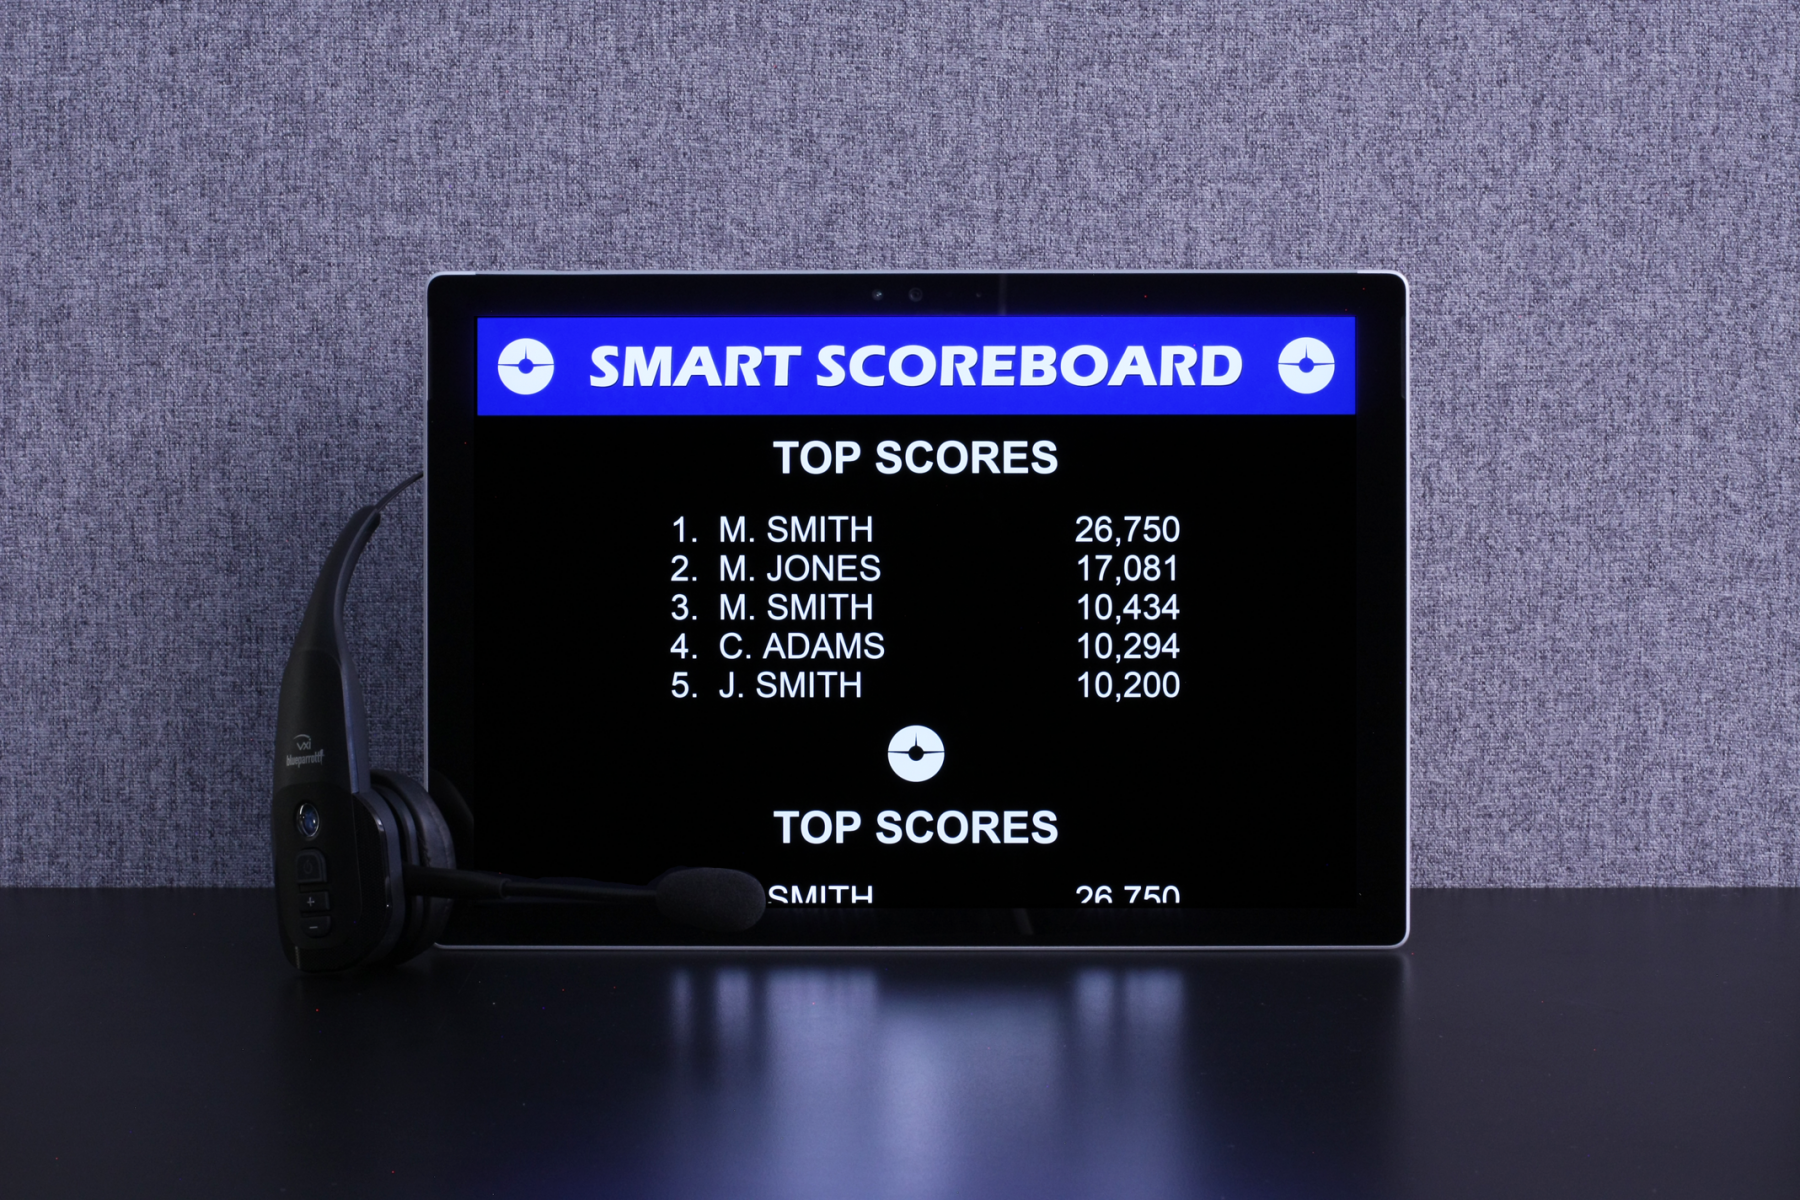 SMART Part Task Trainer - Competitive Scoreboard